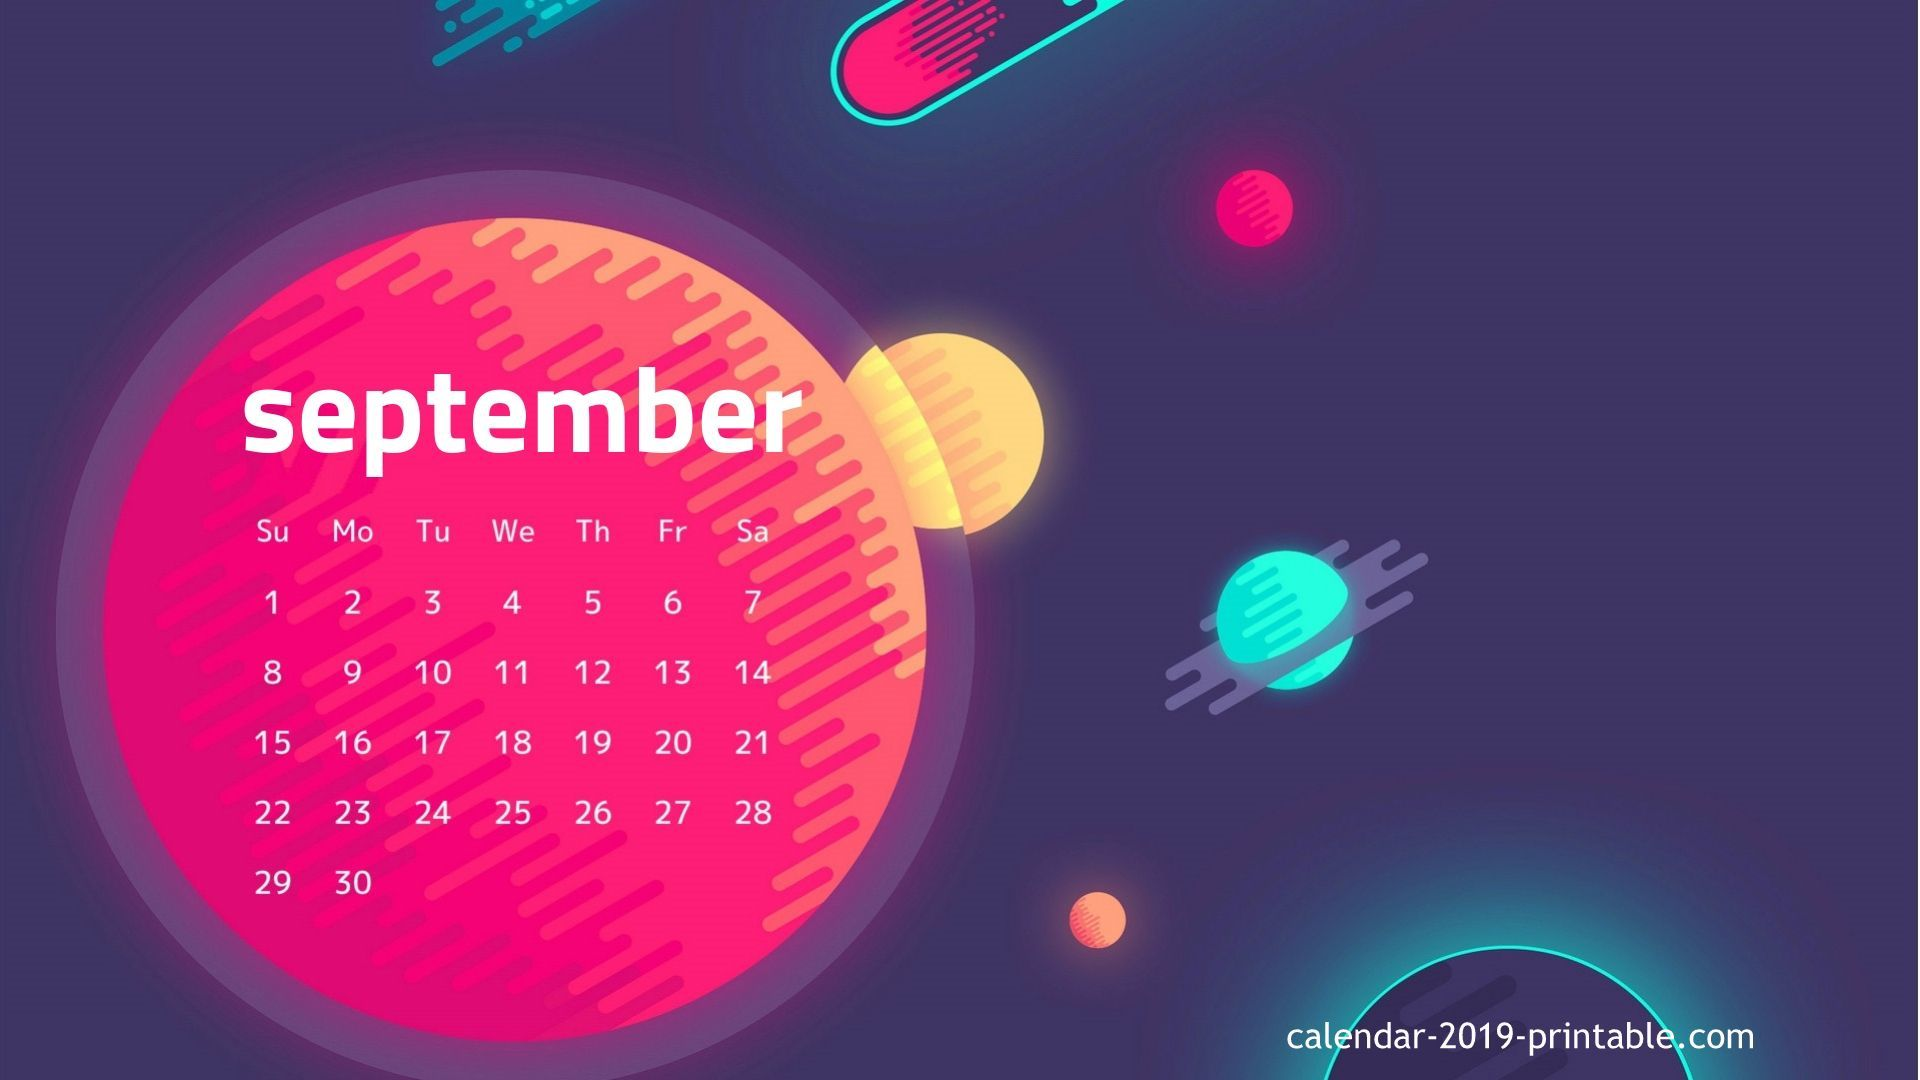 September 2019 Hd Wallpaper Calendar Calendar Wallpaper Desktop Calendar 2019 Calendar